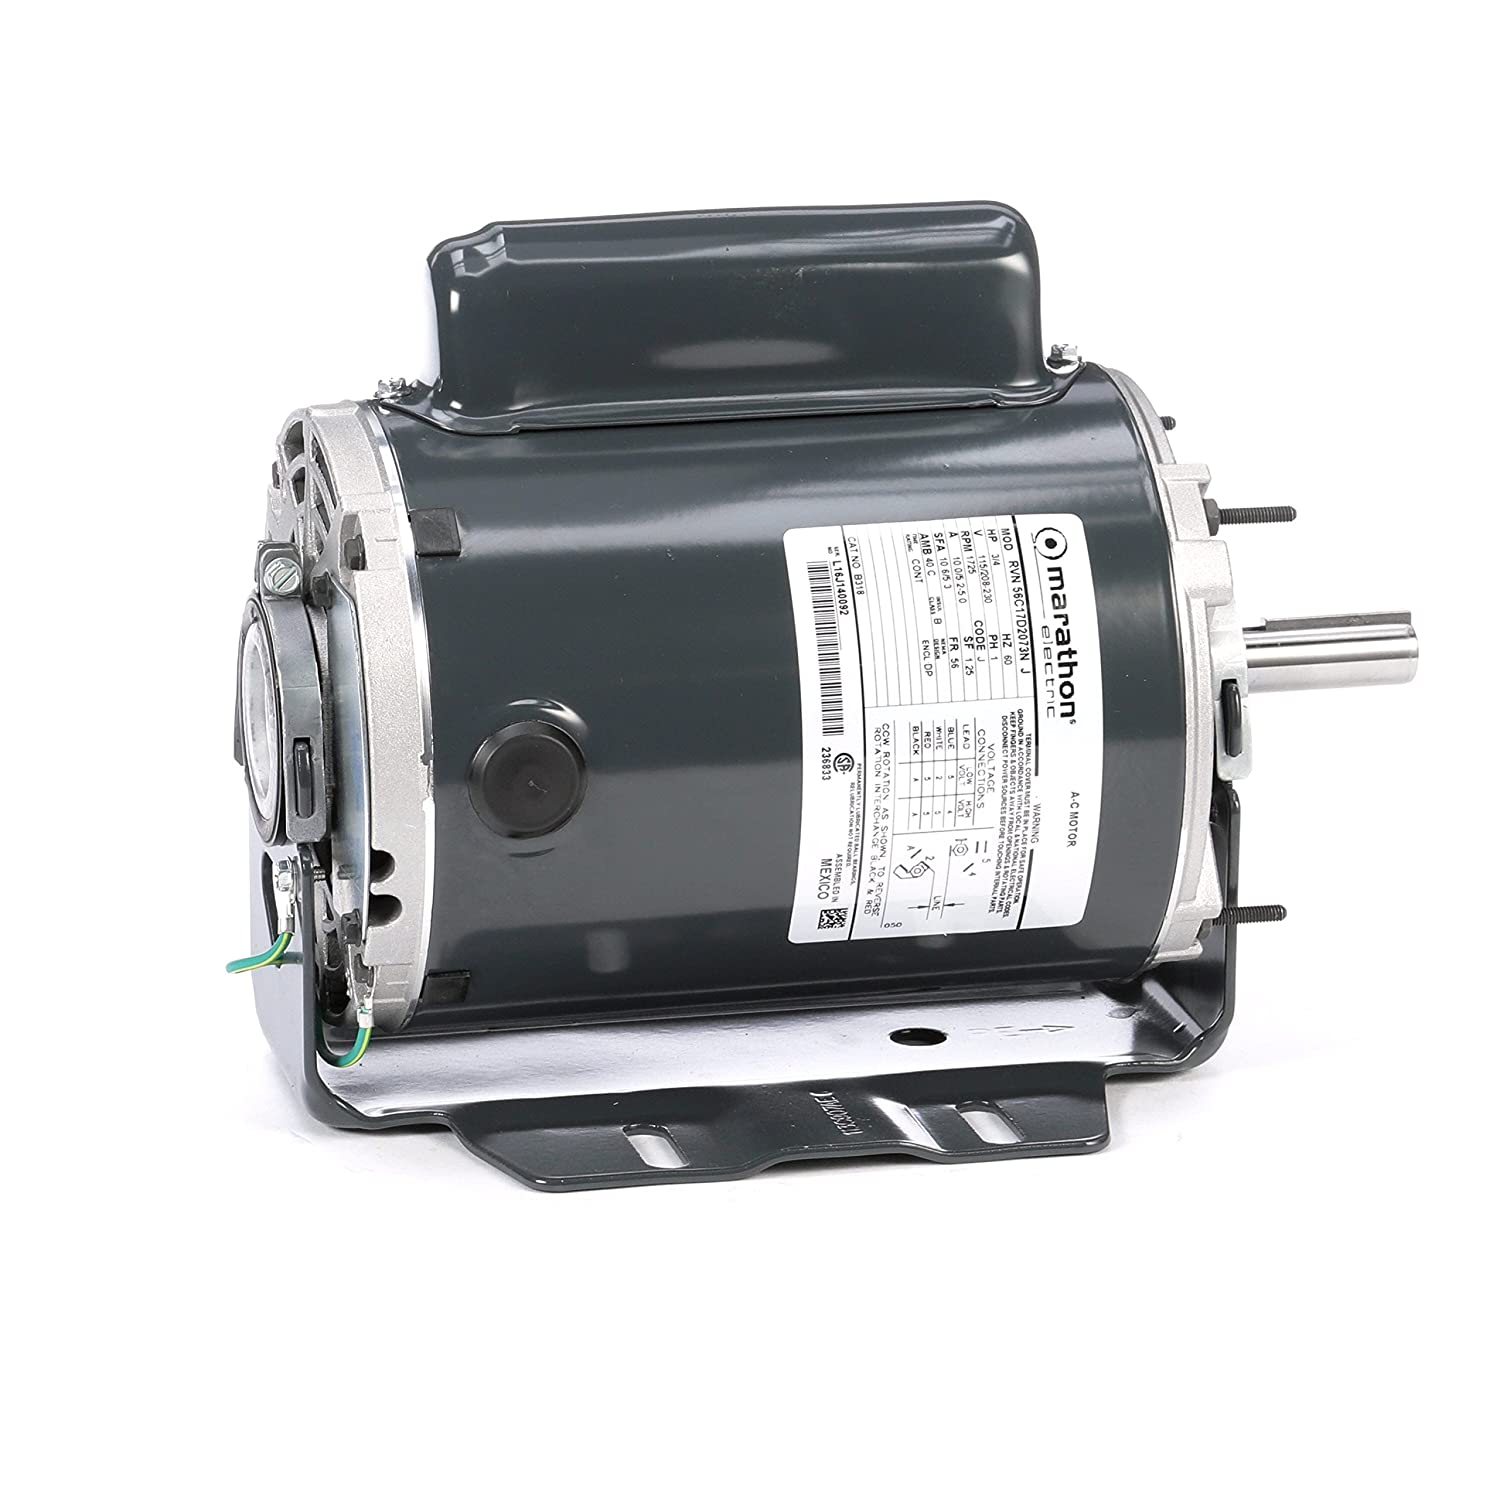 Marathon B318 Fan and Blower Motor, Single/Split Phase, Protection - None, 3/4 hp, 1725 rpm, 115/208-230V, 10.0/5.2-5.0 amp